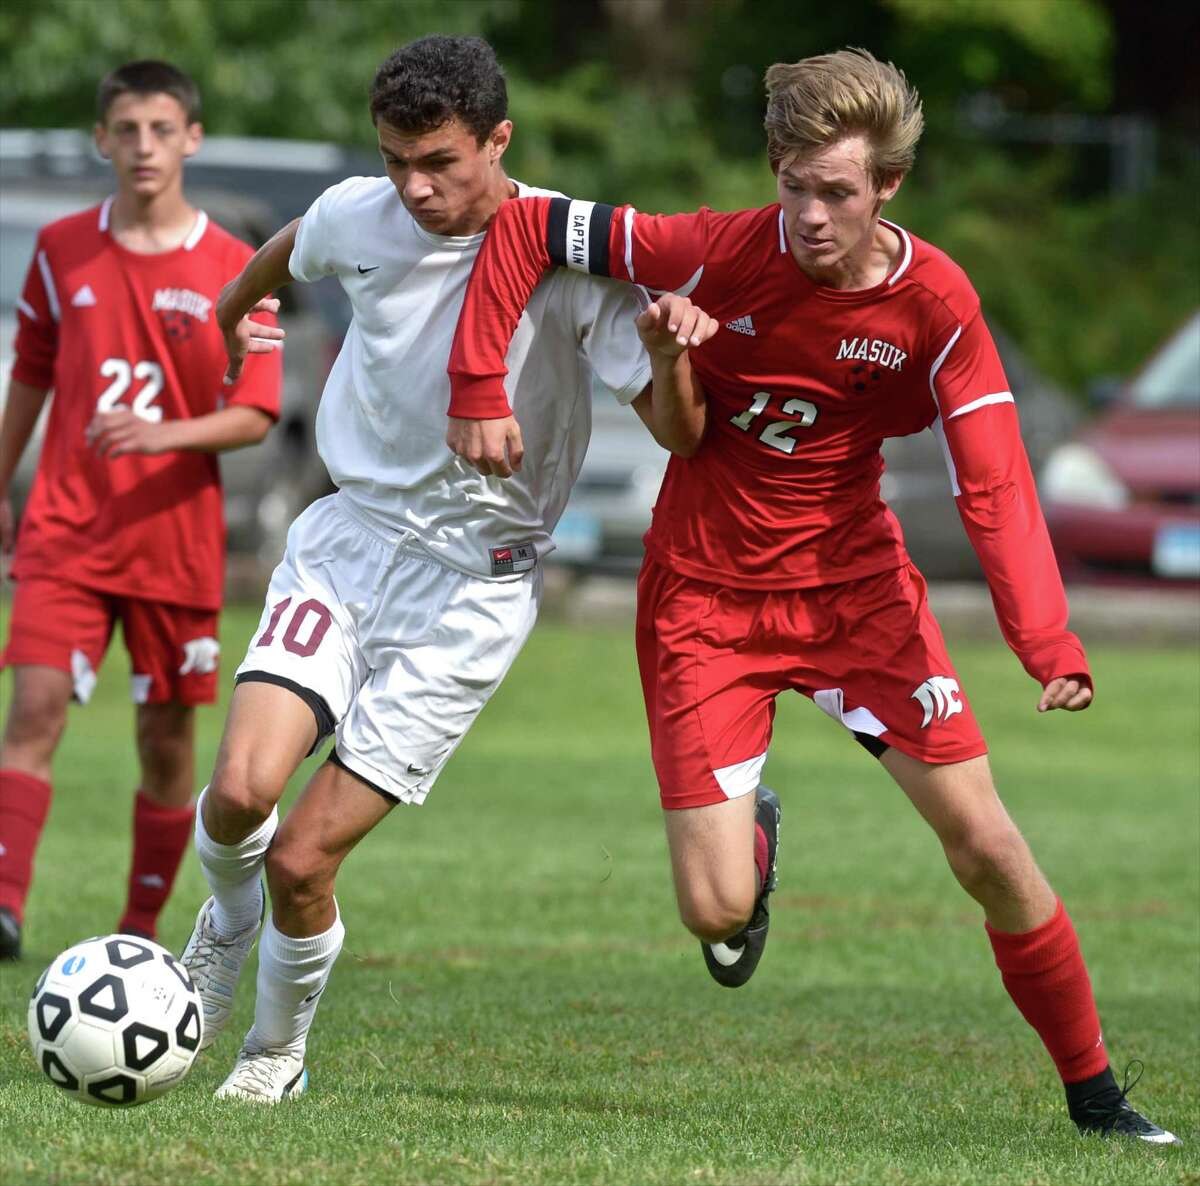 FILE PHOTO: Bethel's Frank Musser (10) and Masuk's Michael Snajder (12) battle for the ball in the boys high school soccer game between Masuk and Bethel high schools on Saturday, September 26, 2015, at Rourke Field, in Bethel, Conn.